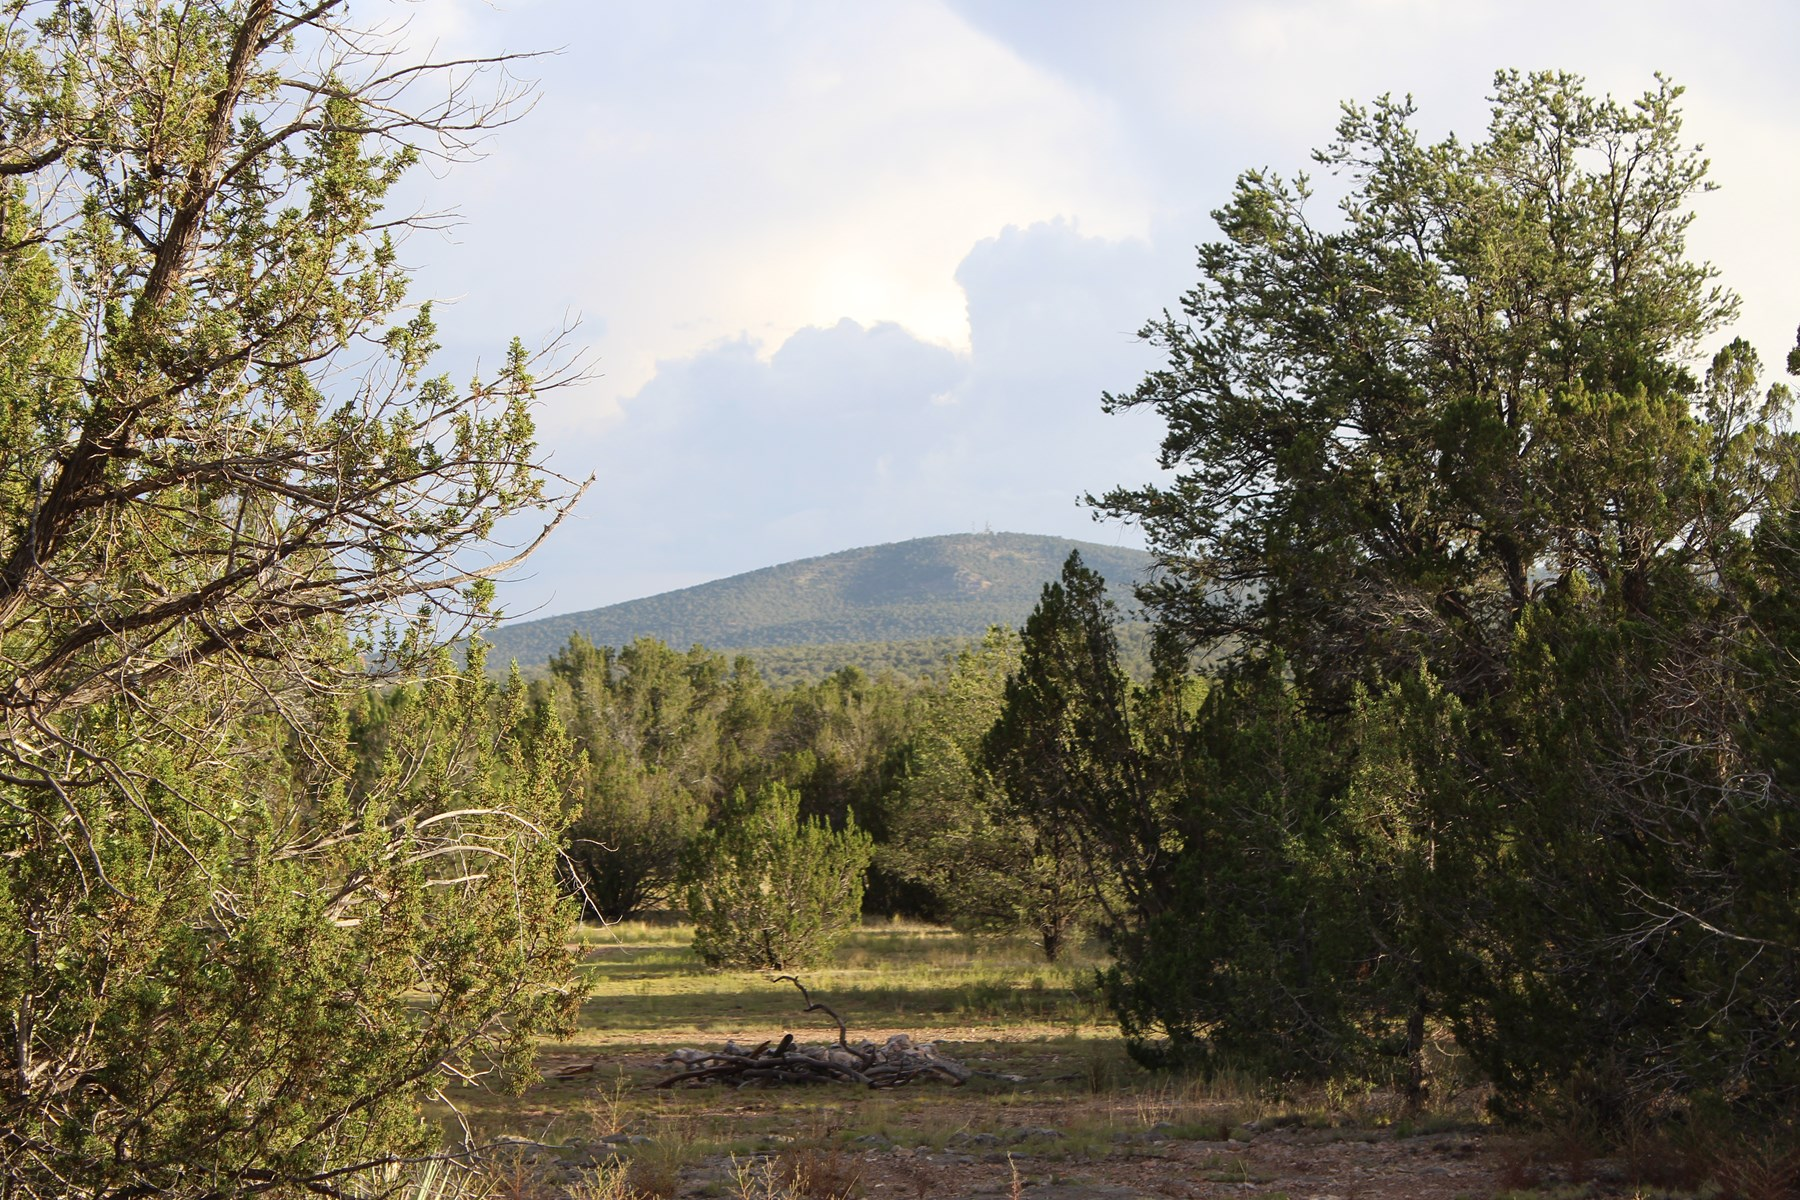 Mountain Property borders State Land 39 acres